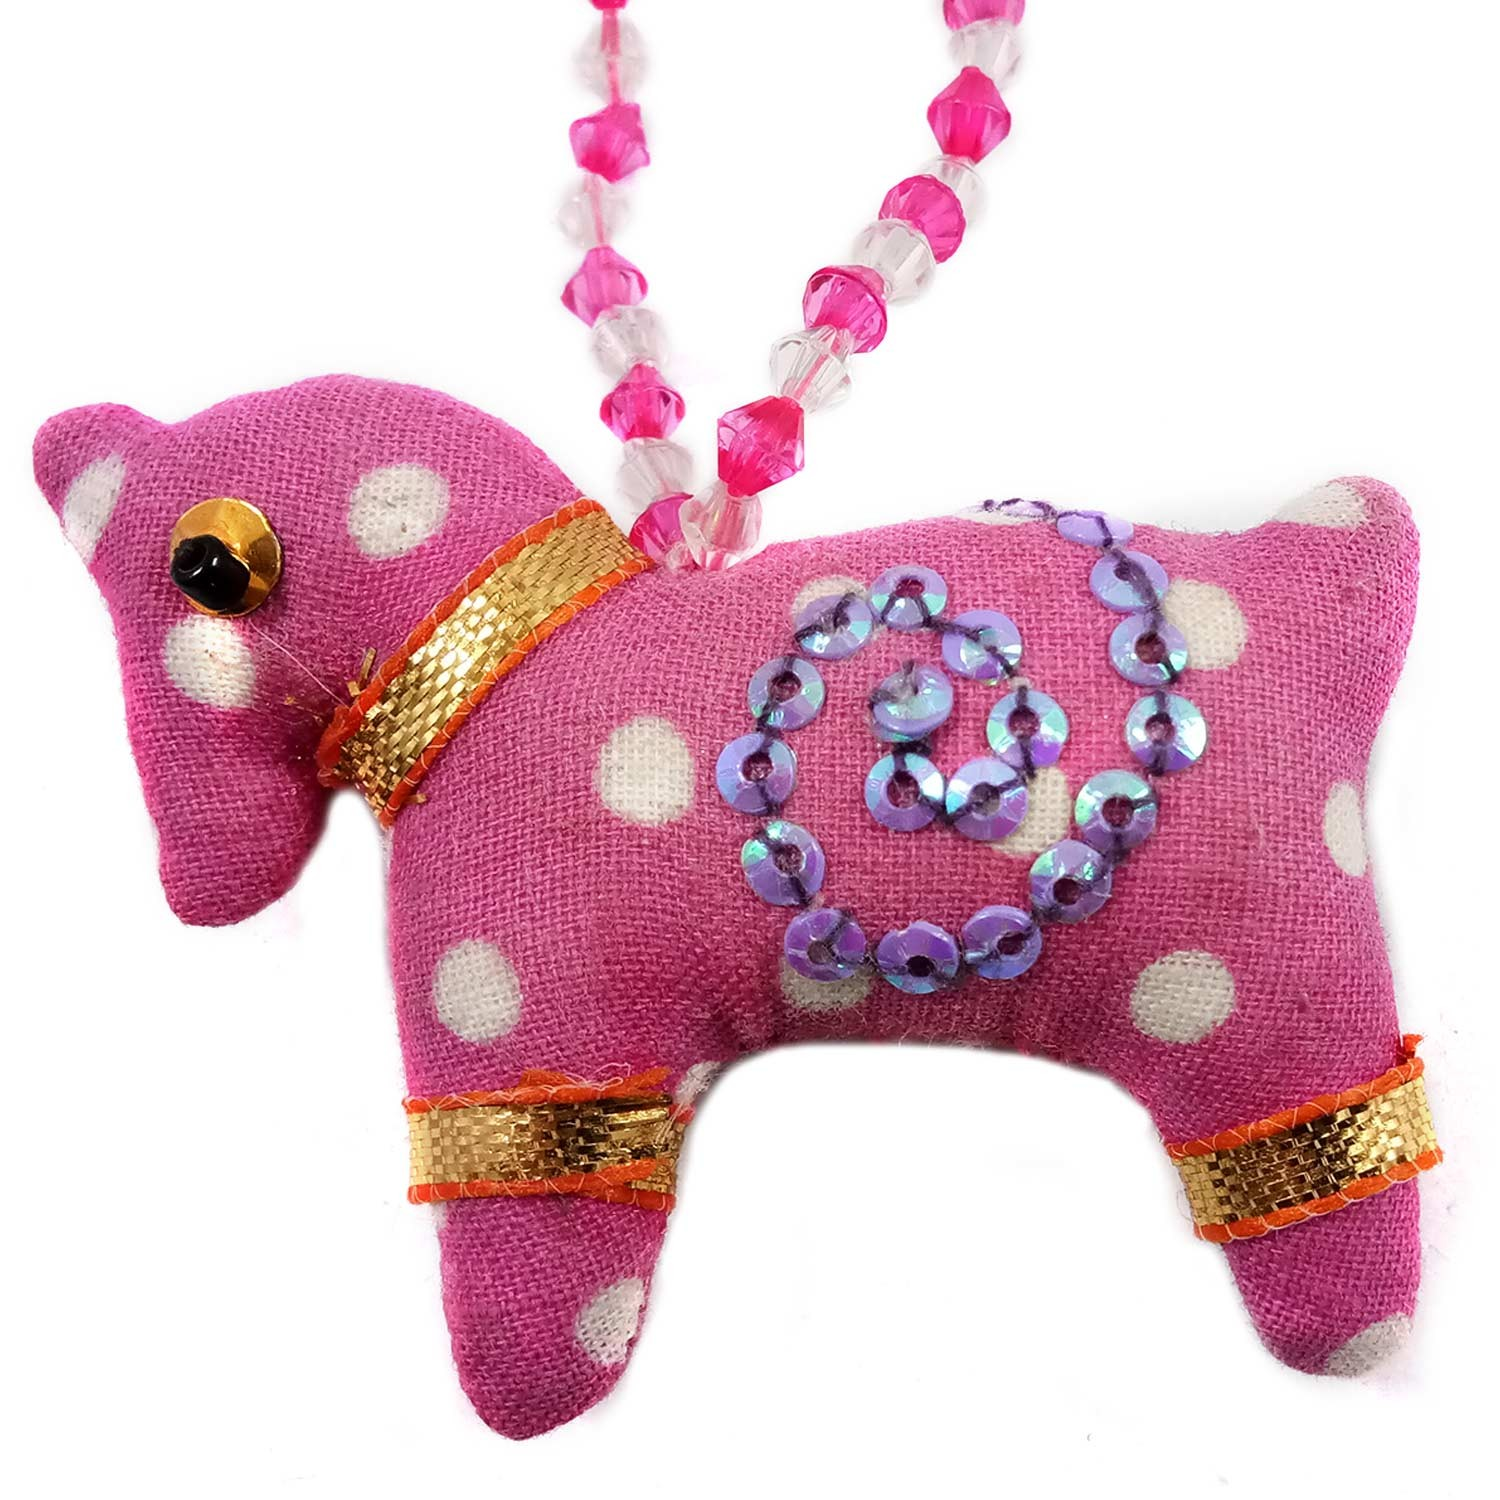 Handmade Multicolor Art Horse Keychain or Keyring | Girls Bag Decoration Charm | Decorative Ornaments  by Rural Artisan.